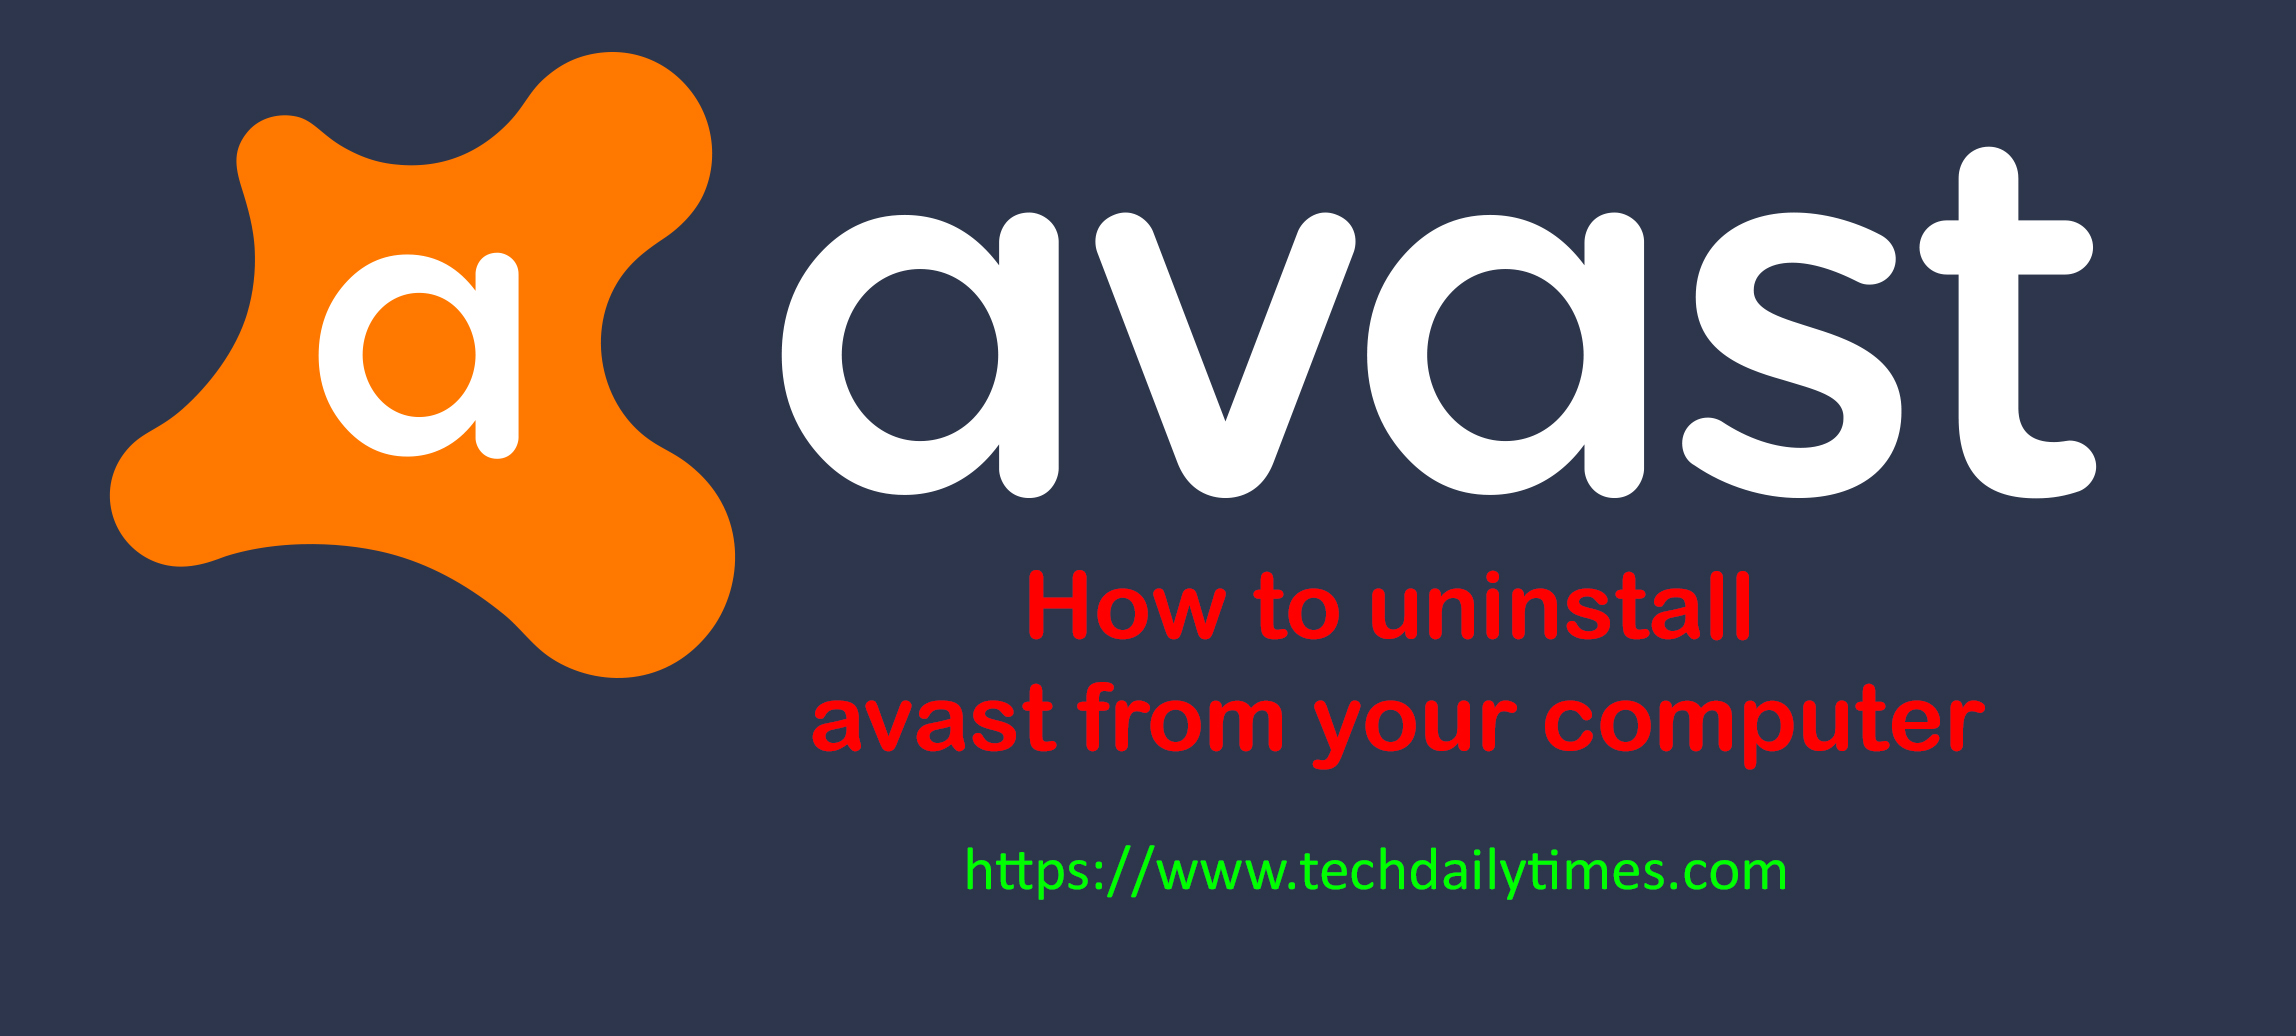 How to uninstall Avast from your computer